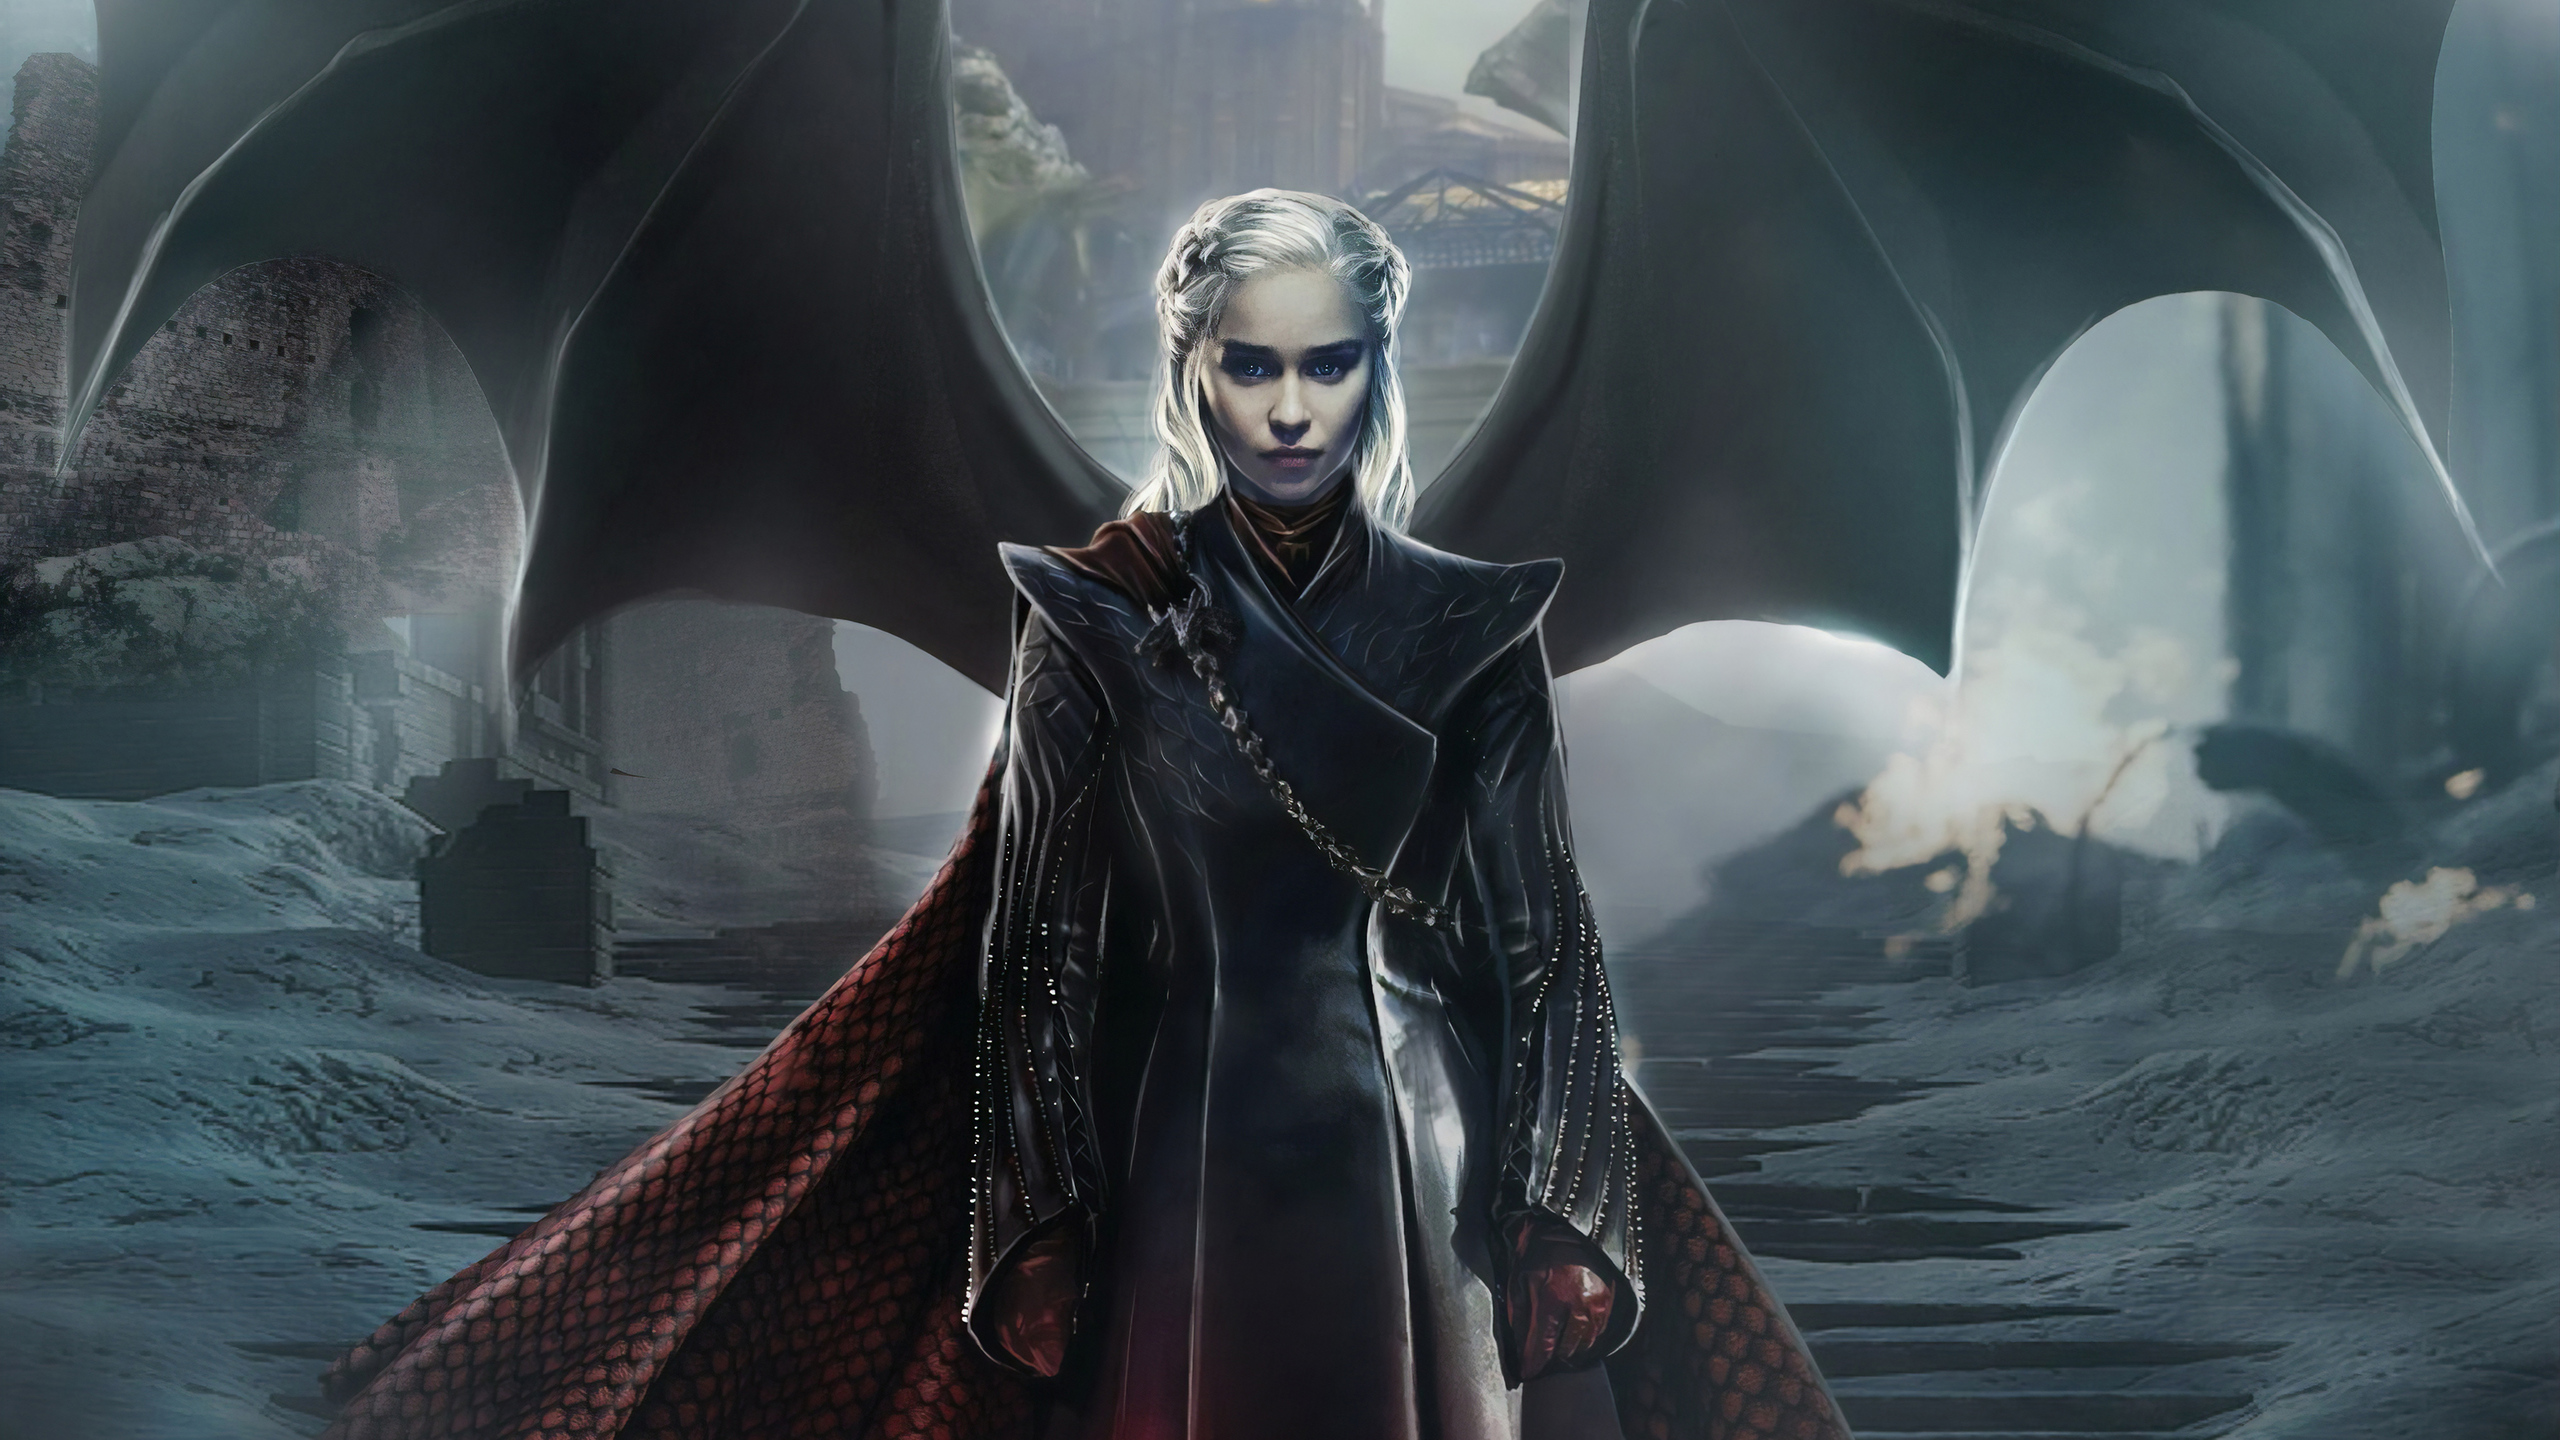 2560x1440 Daenerys Targaryen Game Of Thrones 4k 1440p Resolution